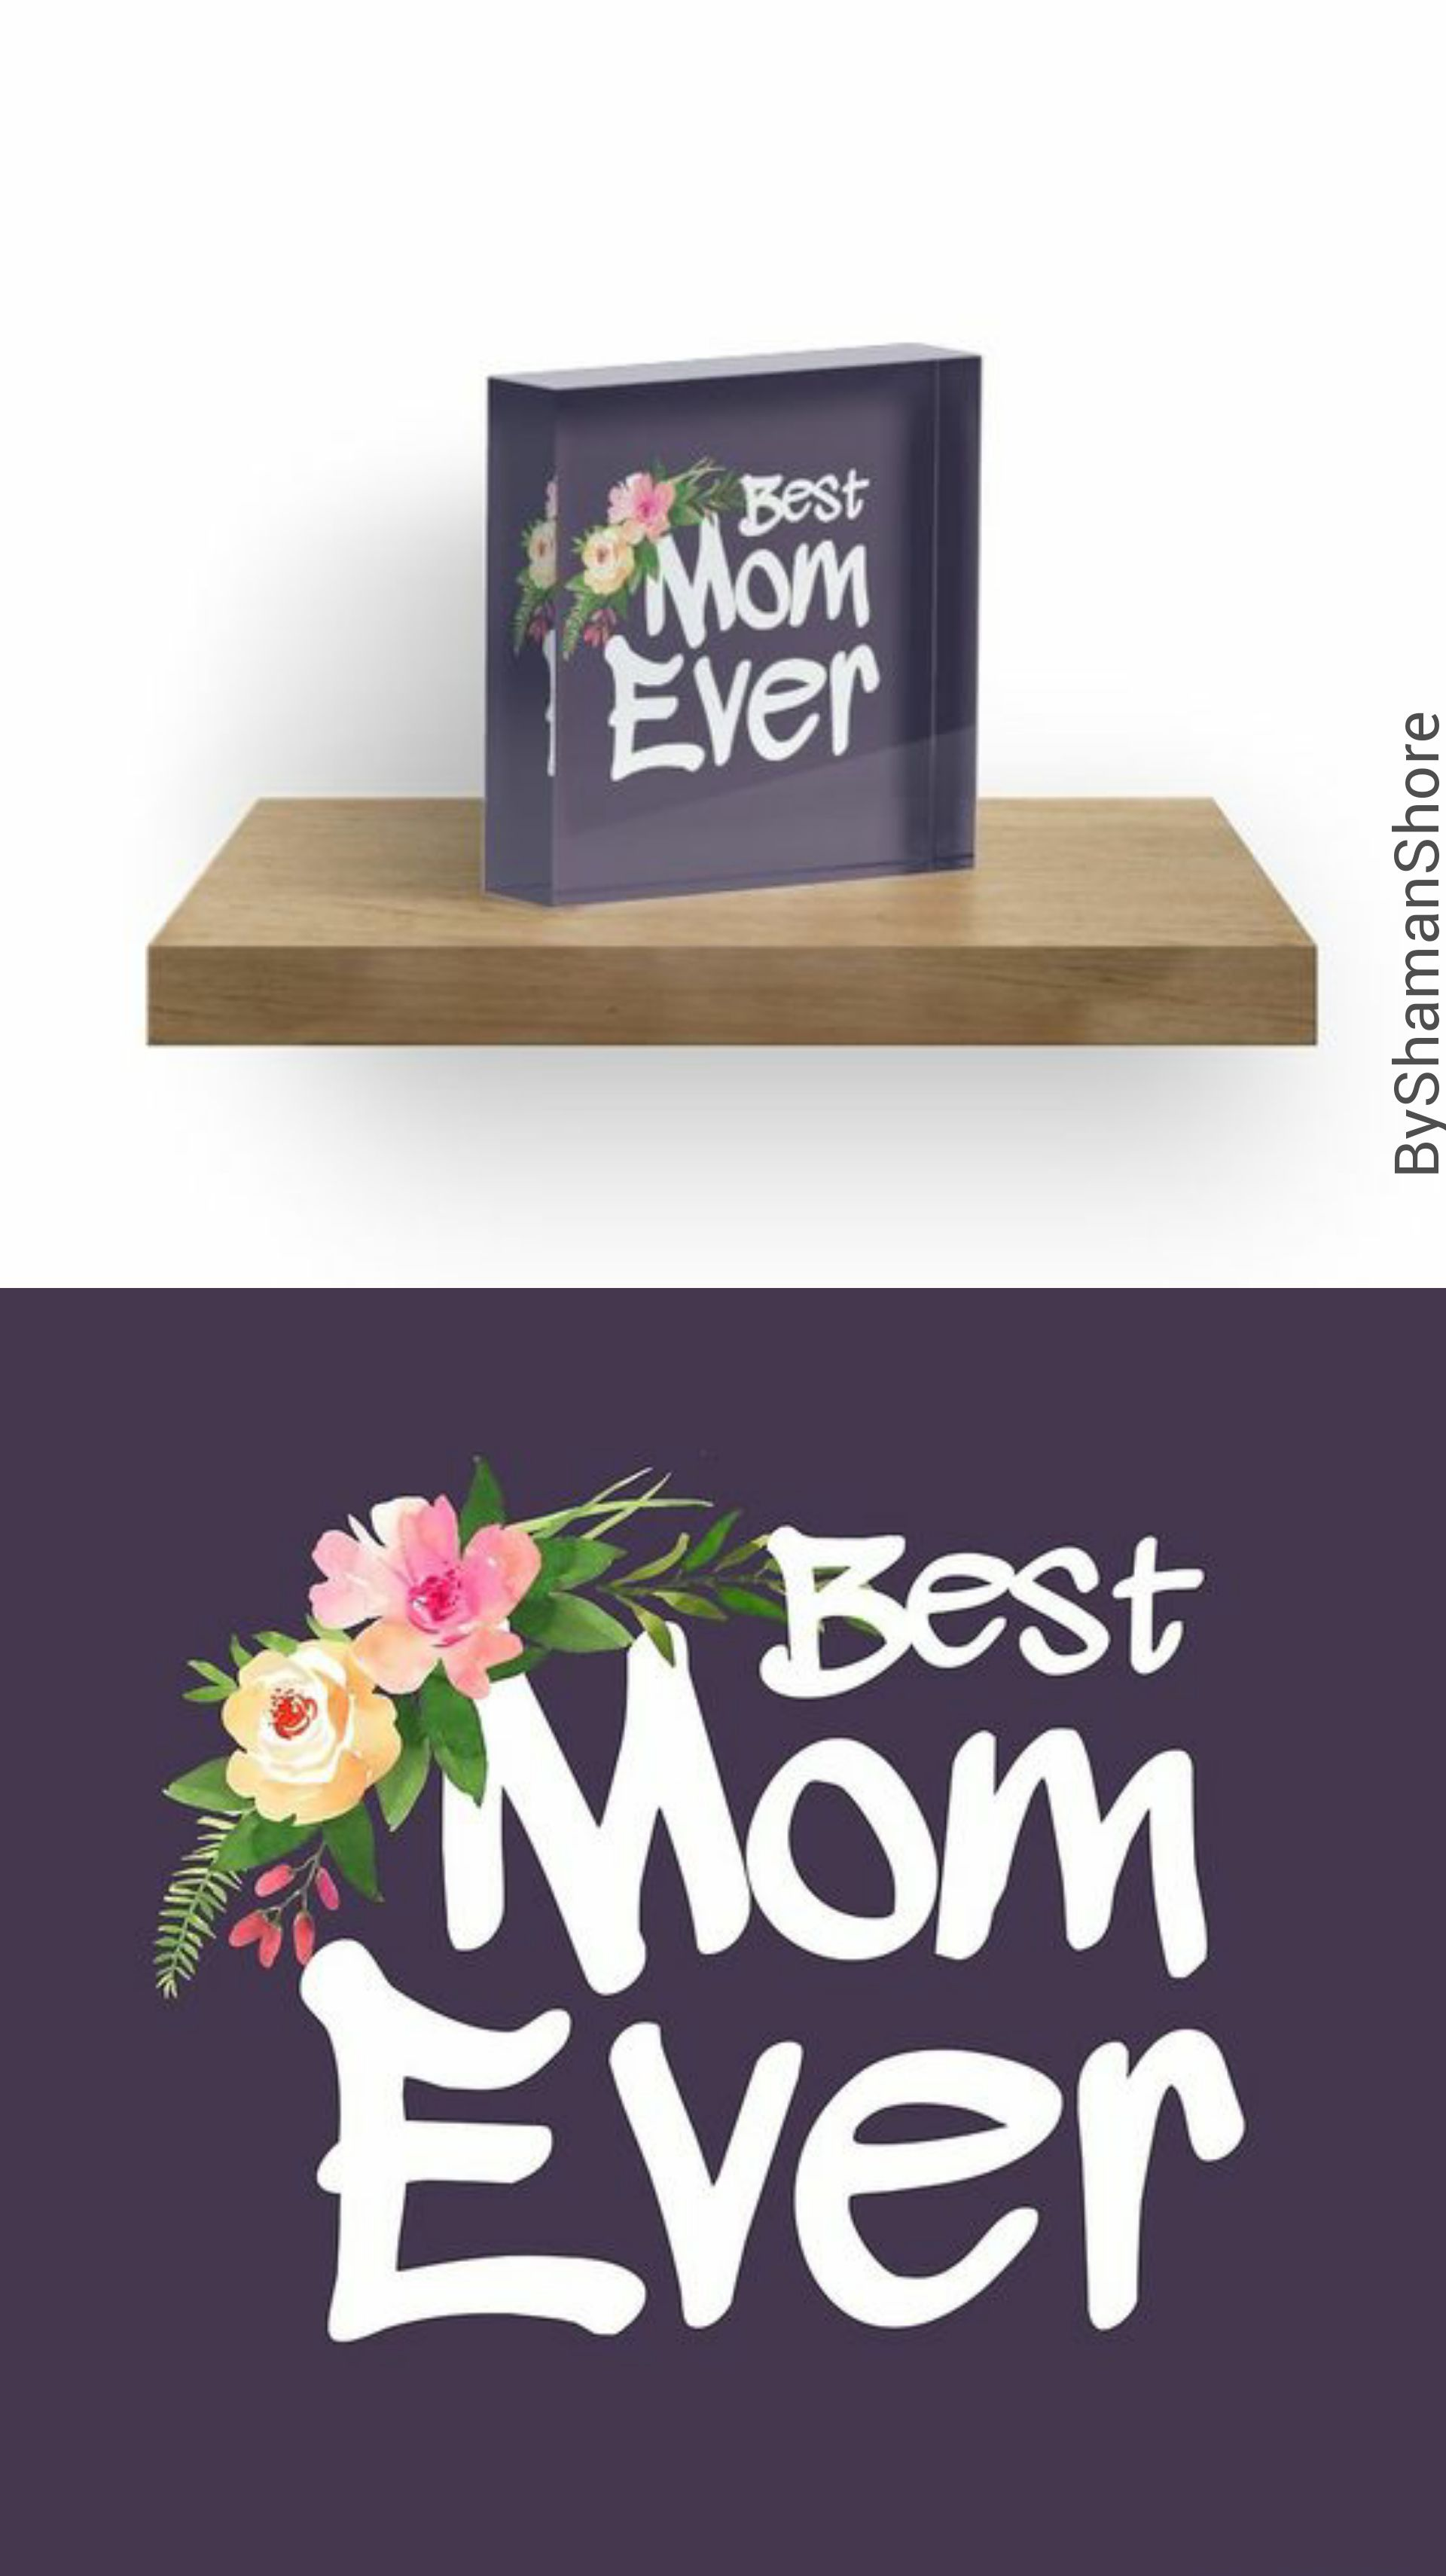 Best Mom Ever Floral Mothers Day Gifts Acrylic Blocks By ShamanShore